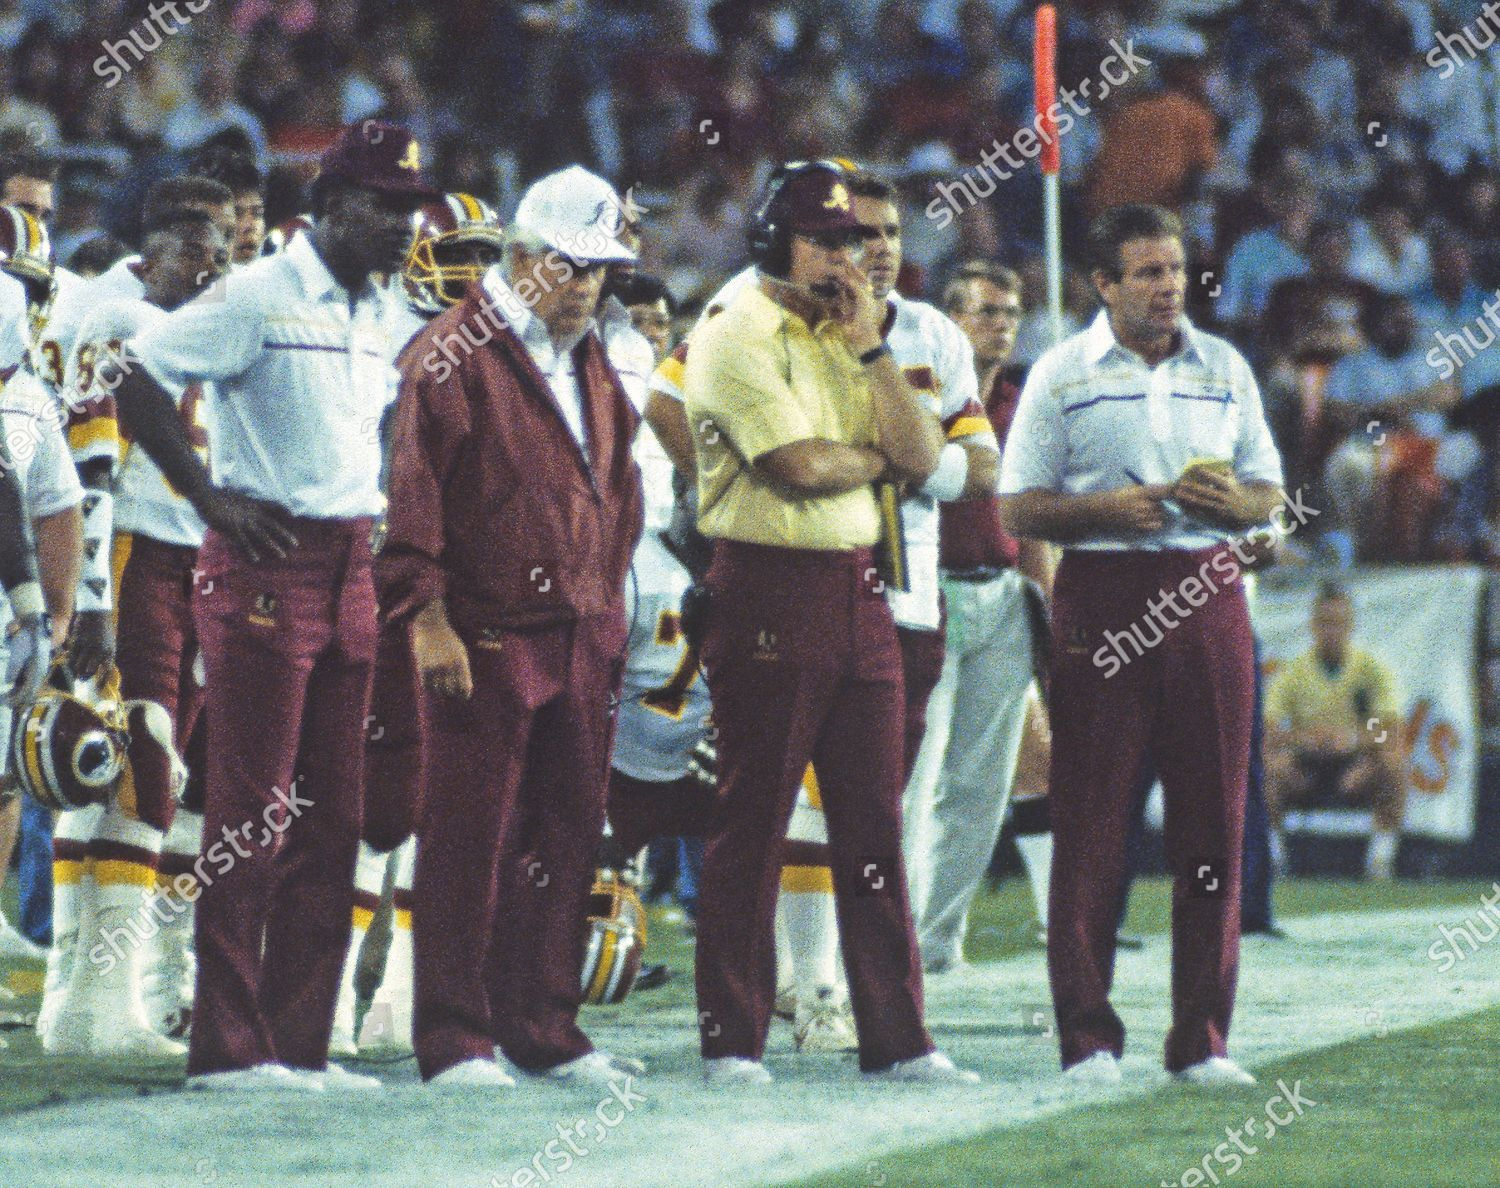 Zdjęcie stockowe: 1989 Dolphins v. Redskins Pre-Season Game, Washington, District of Columbia, USA - 05 Aug 1989